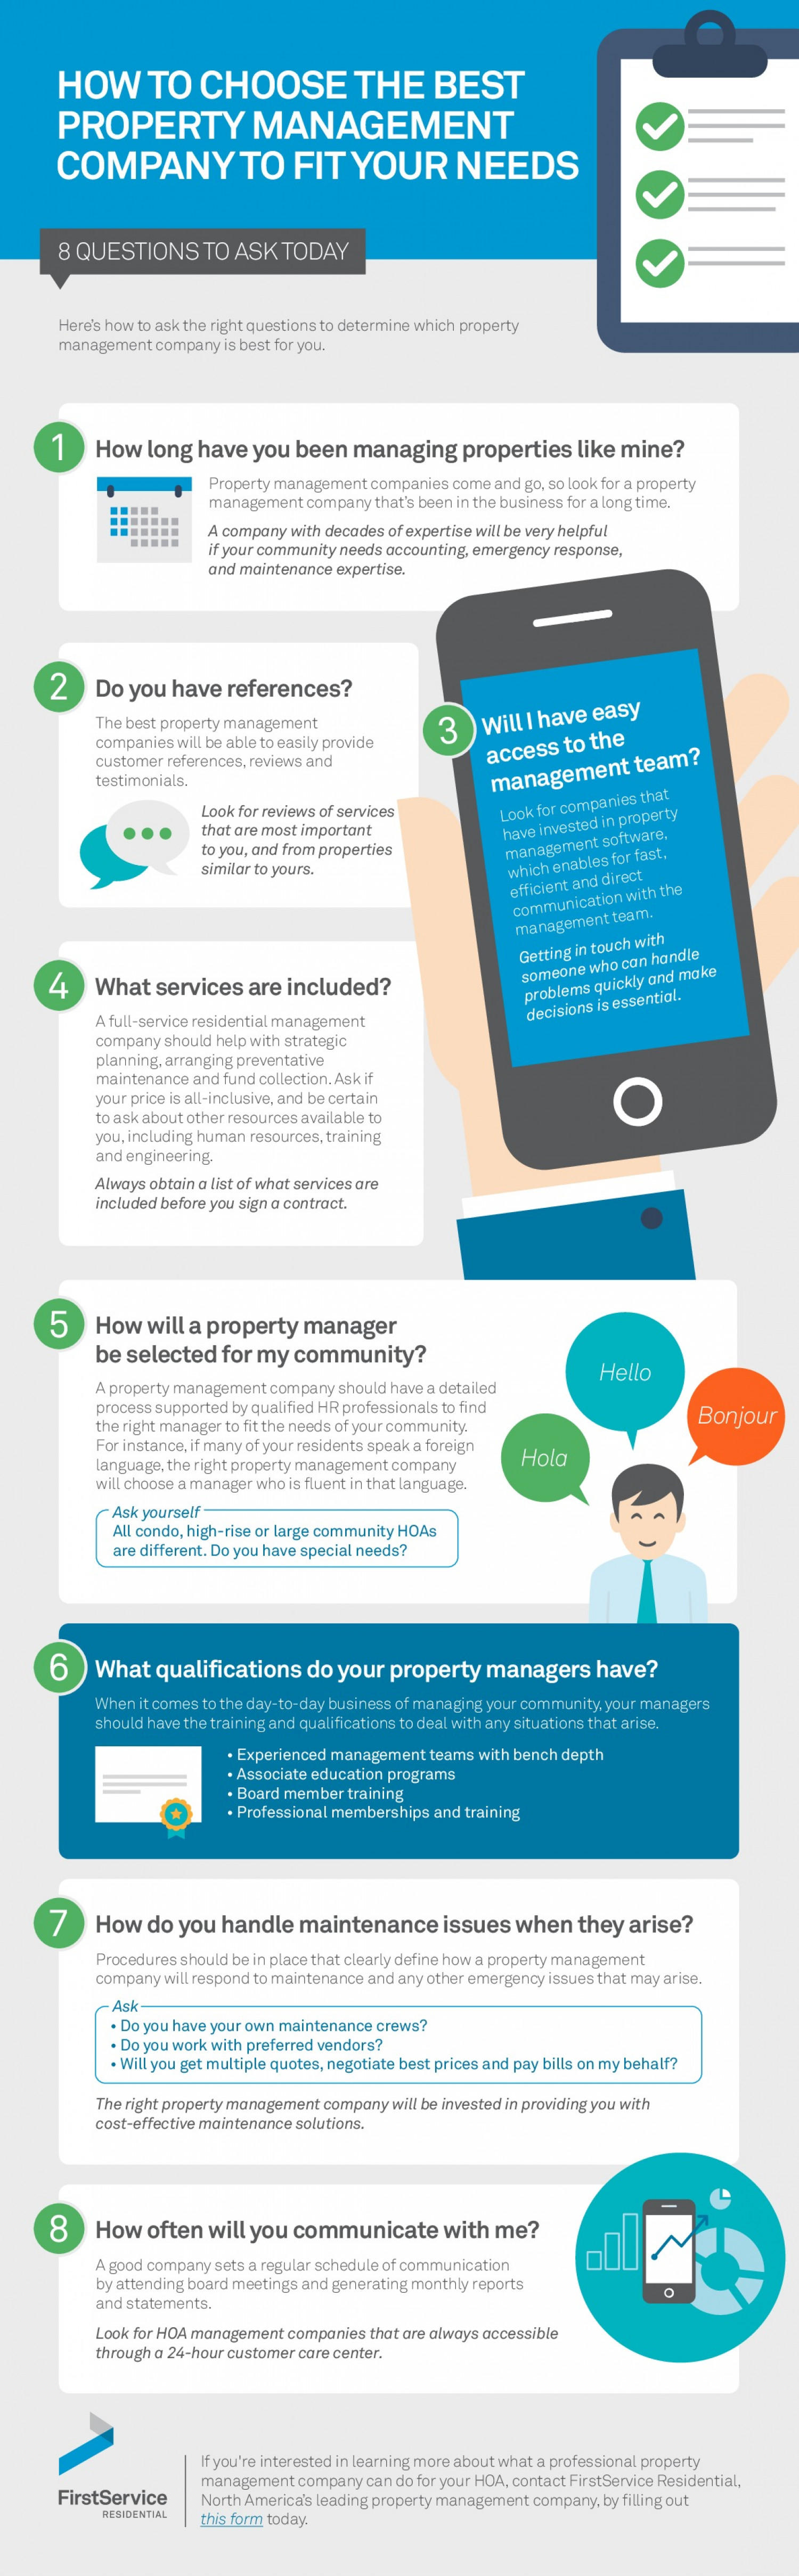 How to Choose the Best Property Management Company to Fit Your Needs Infographic